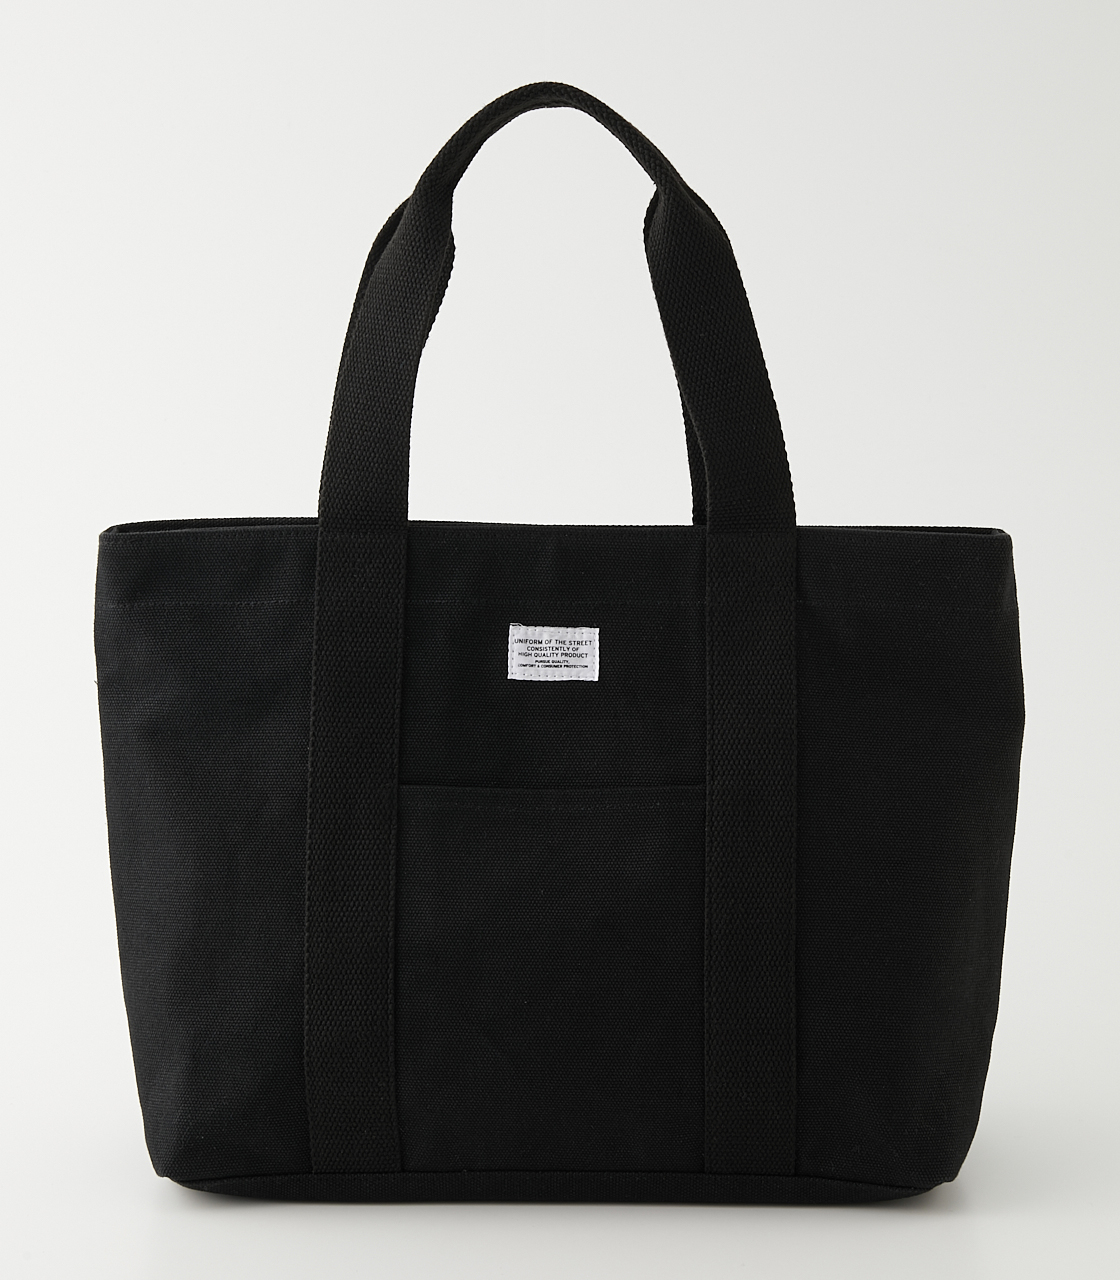 CANVAS TOTE BAG/キャンバストートバッグ 詳細画像 BLK 1